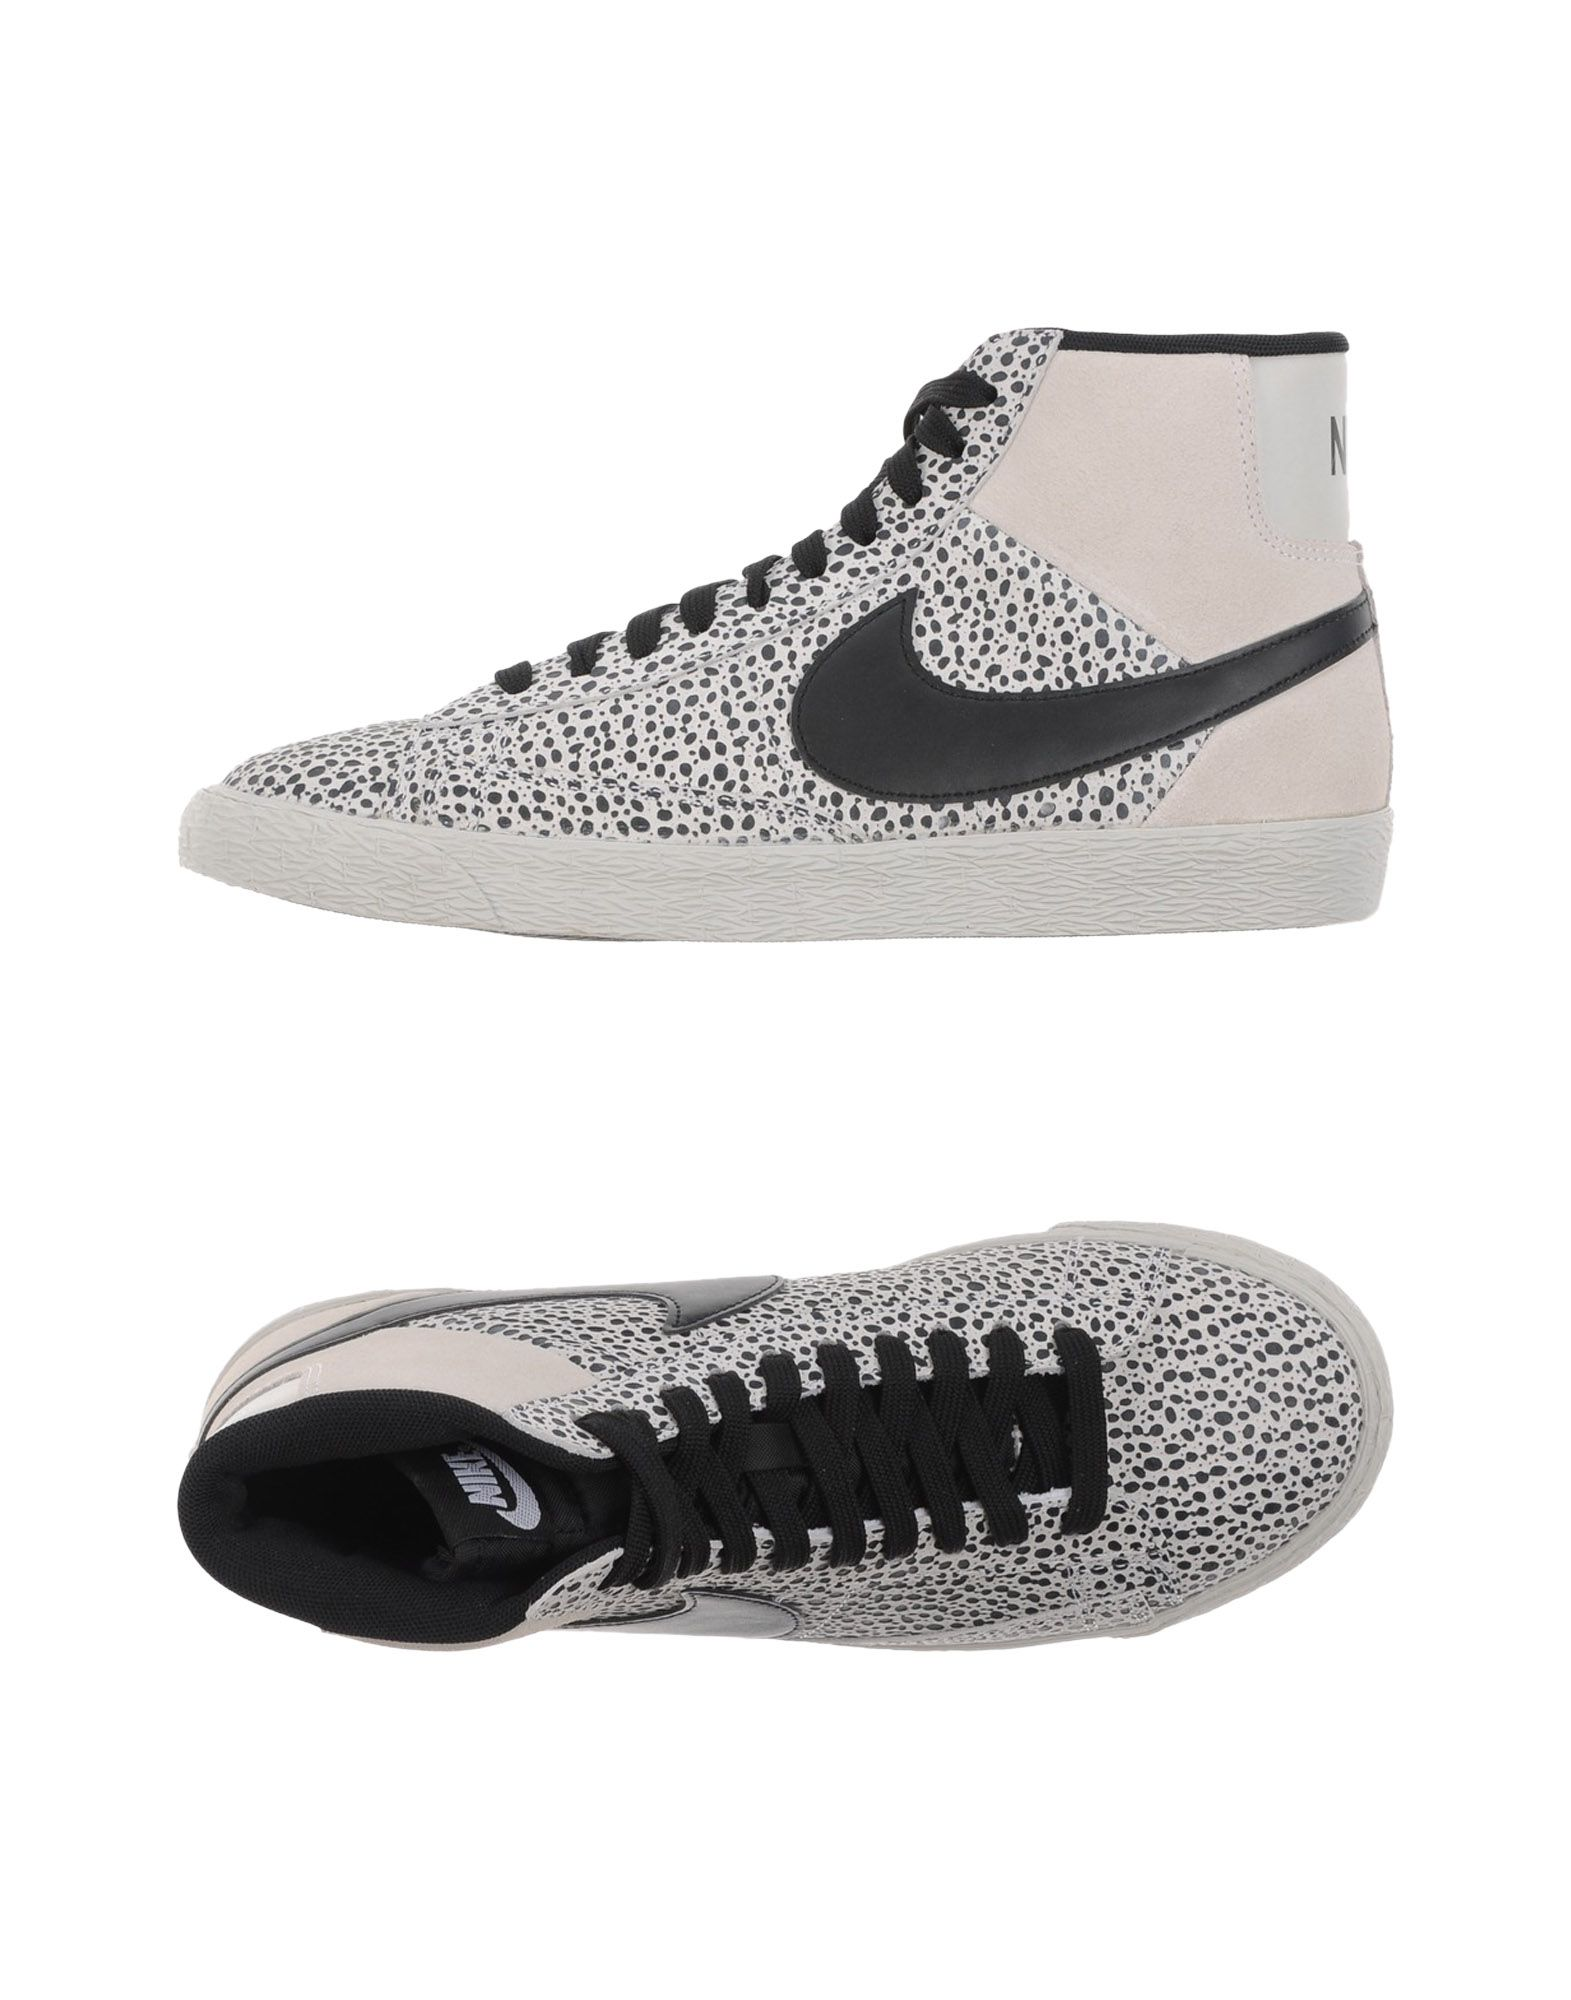 Nike Sneakers online - Women Nike Sneakers online Sneakers on  Canada - 11178450PQ 16ab4e